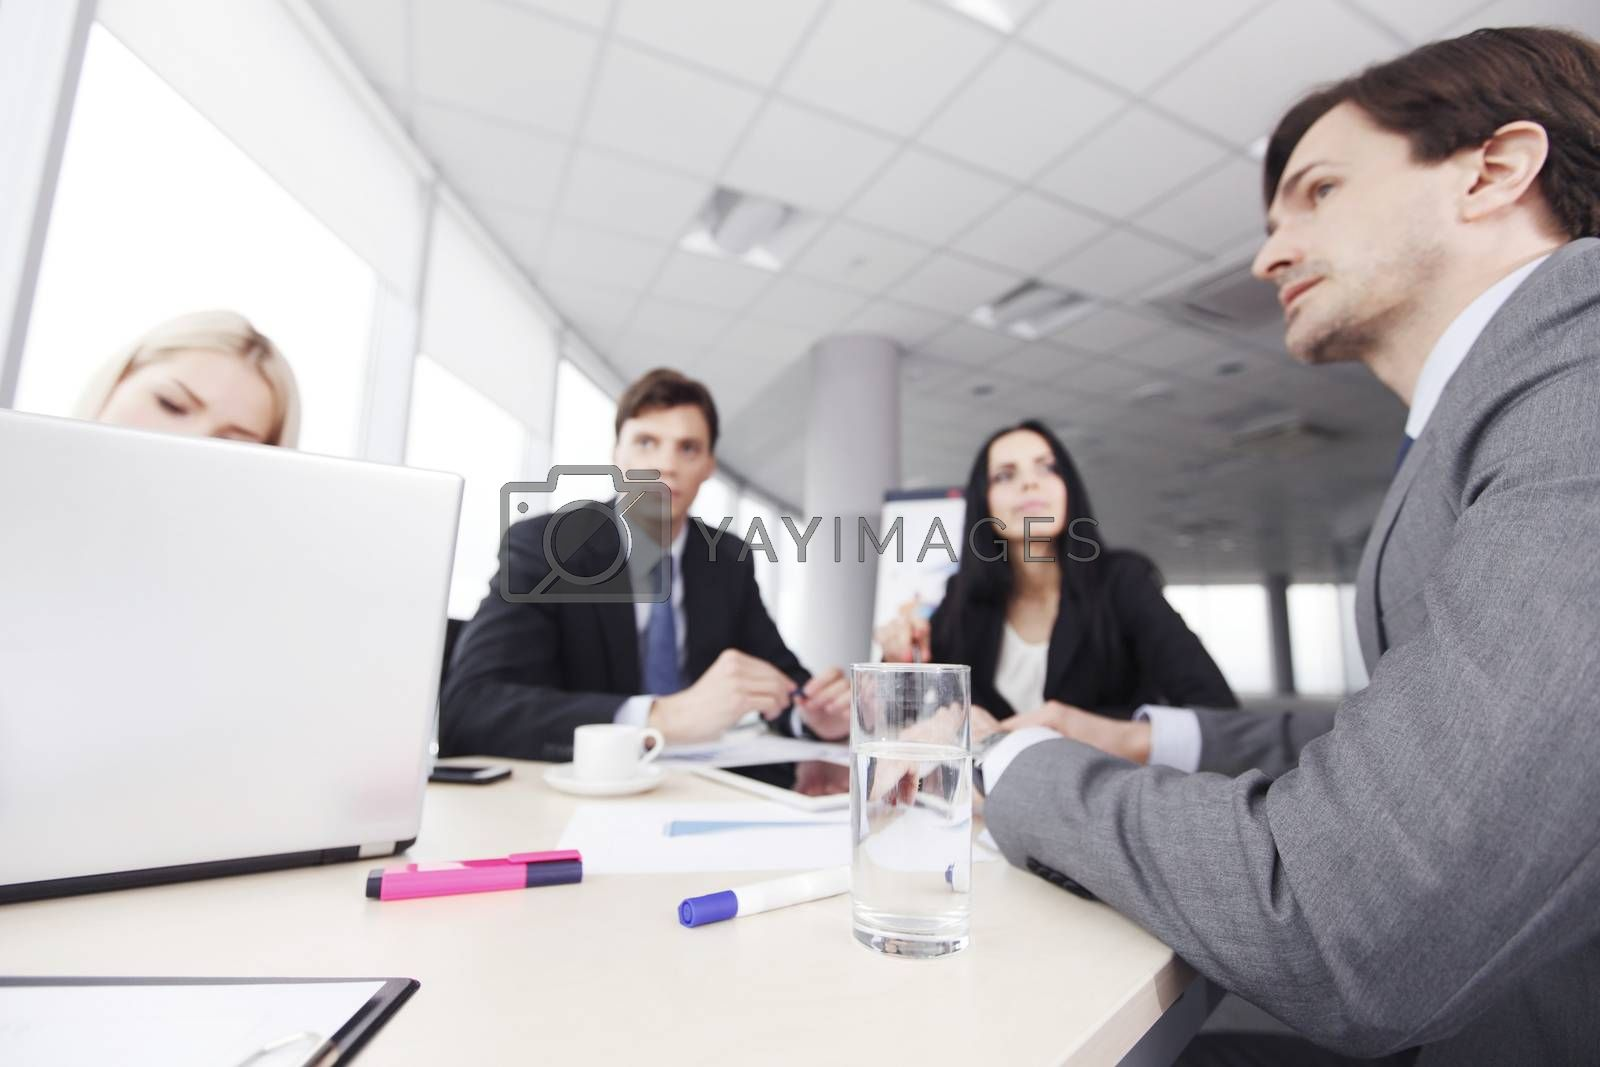 Business people analyzing financial reports in office